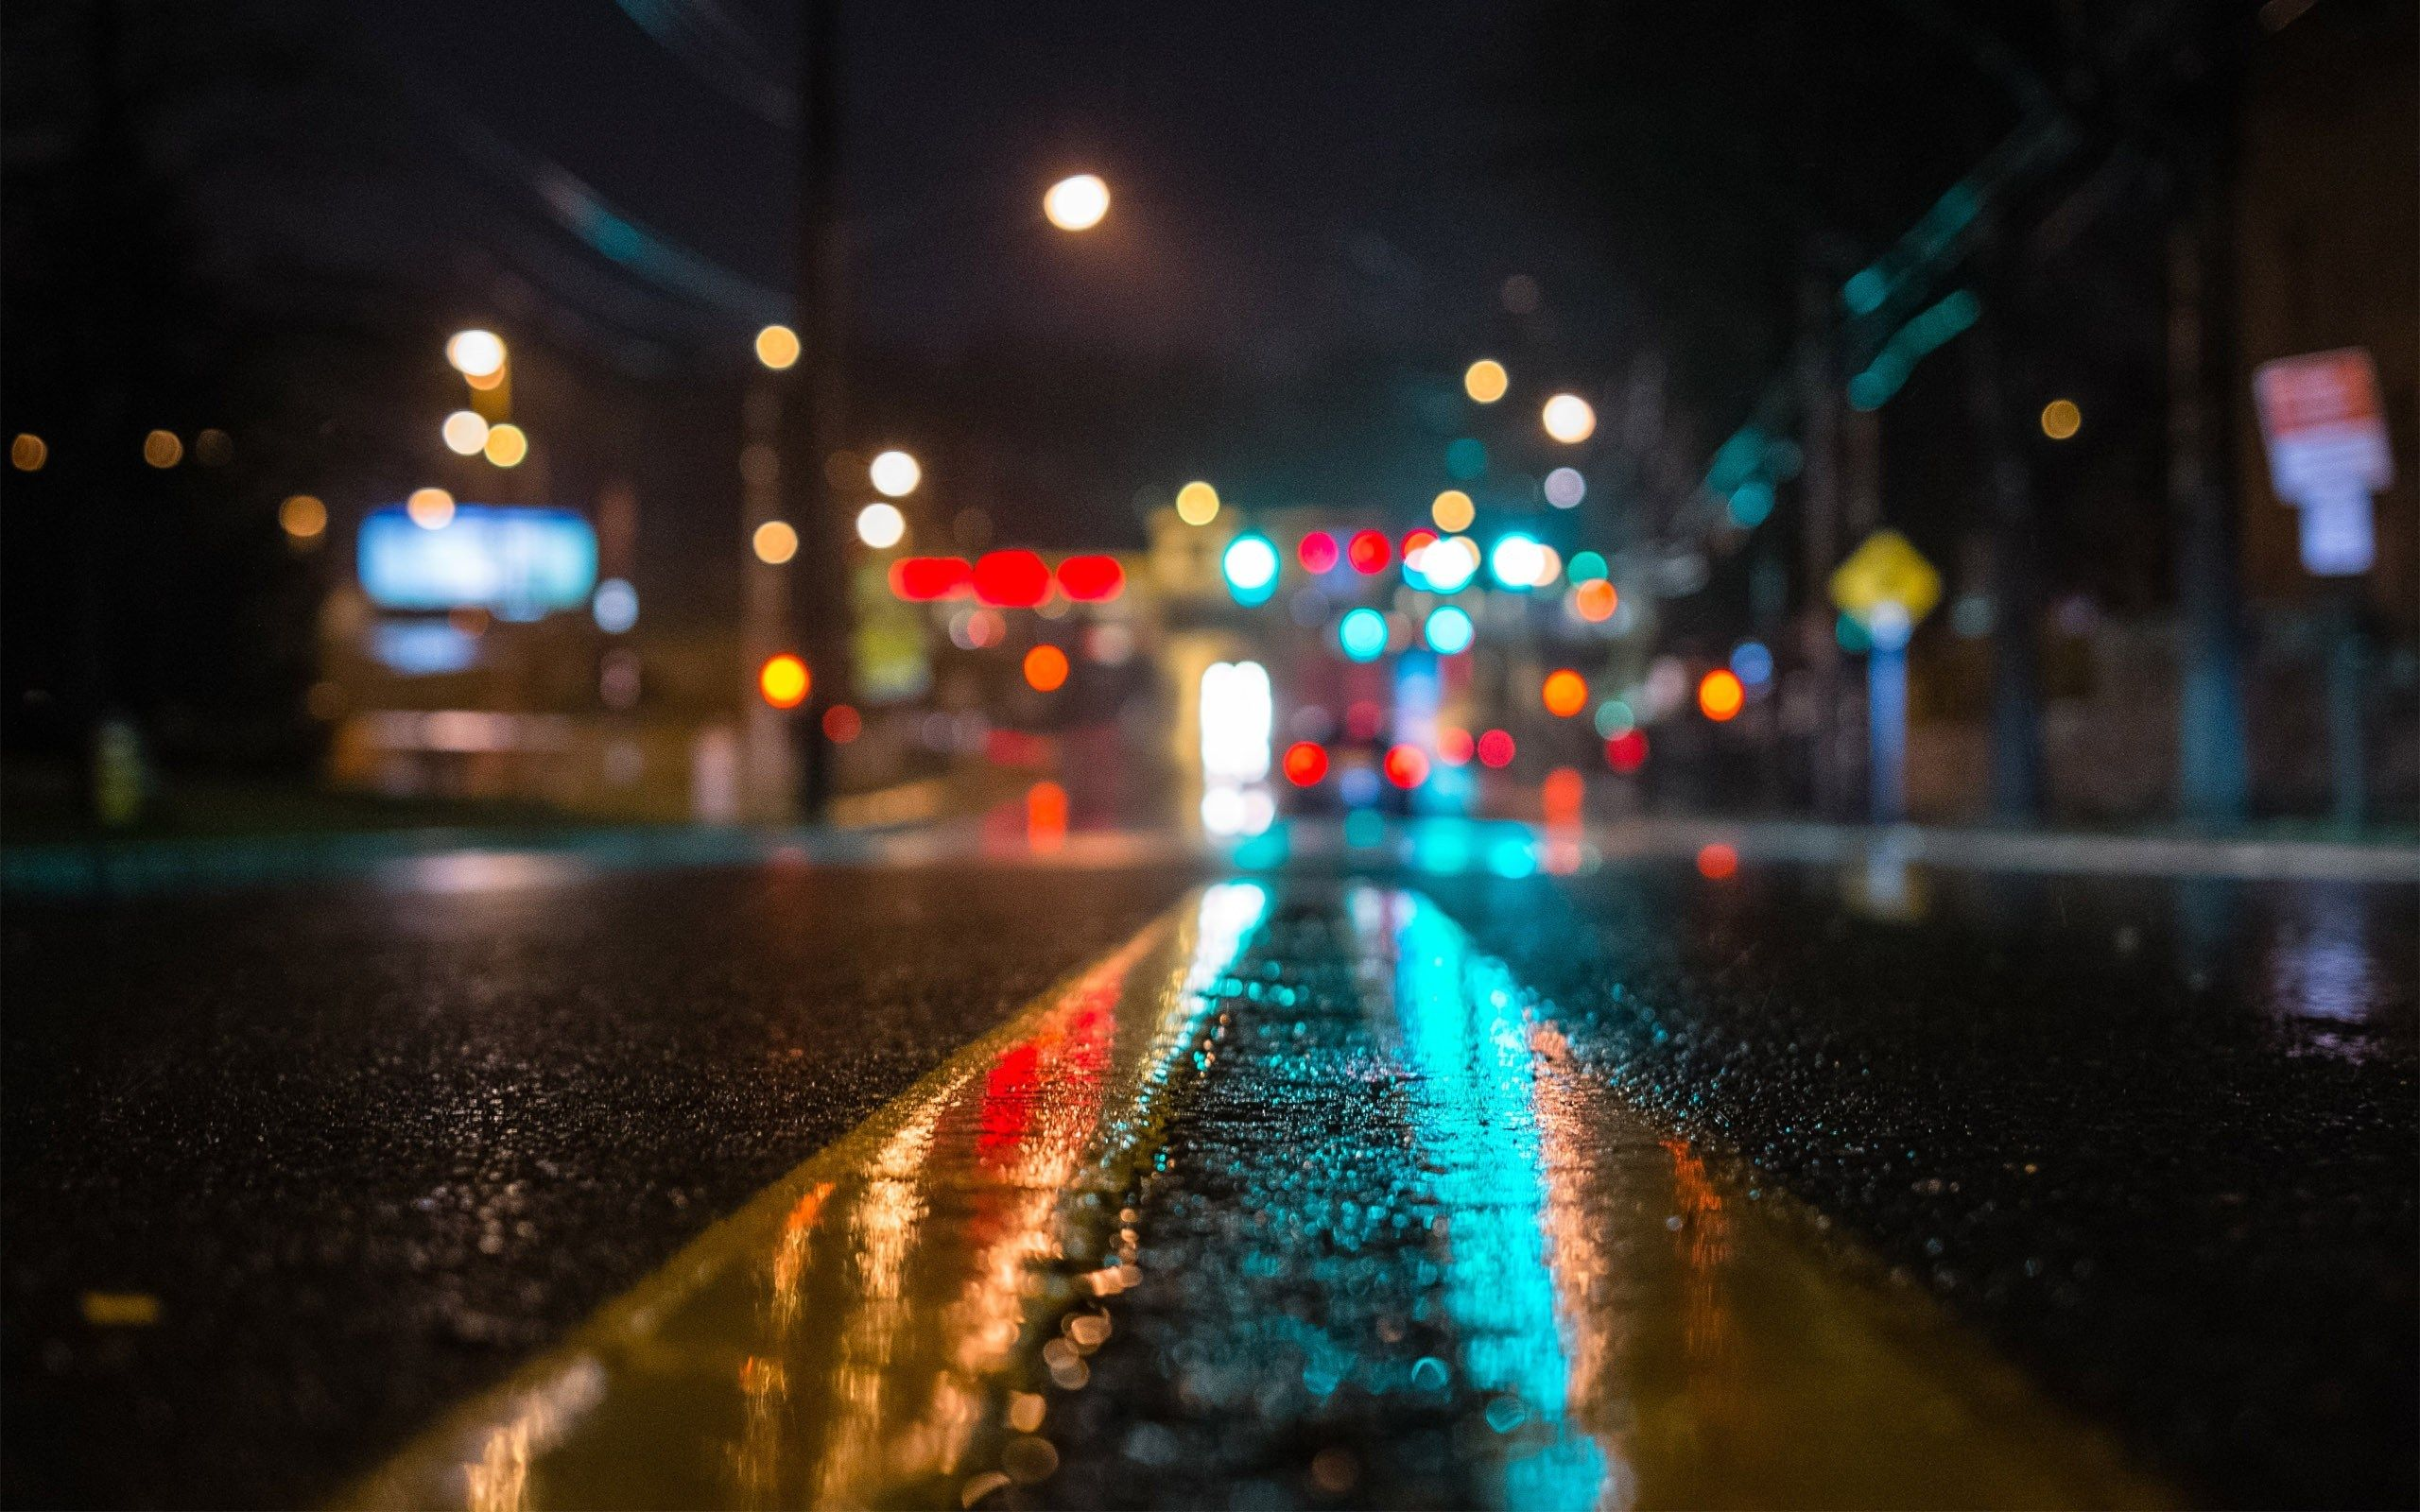 Hd wallpaper night - Image For Wet Road Yellow Lines Night City Wide Hd Wallpaper